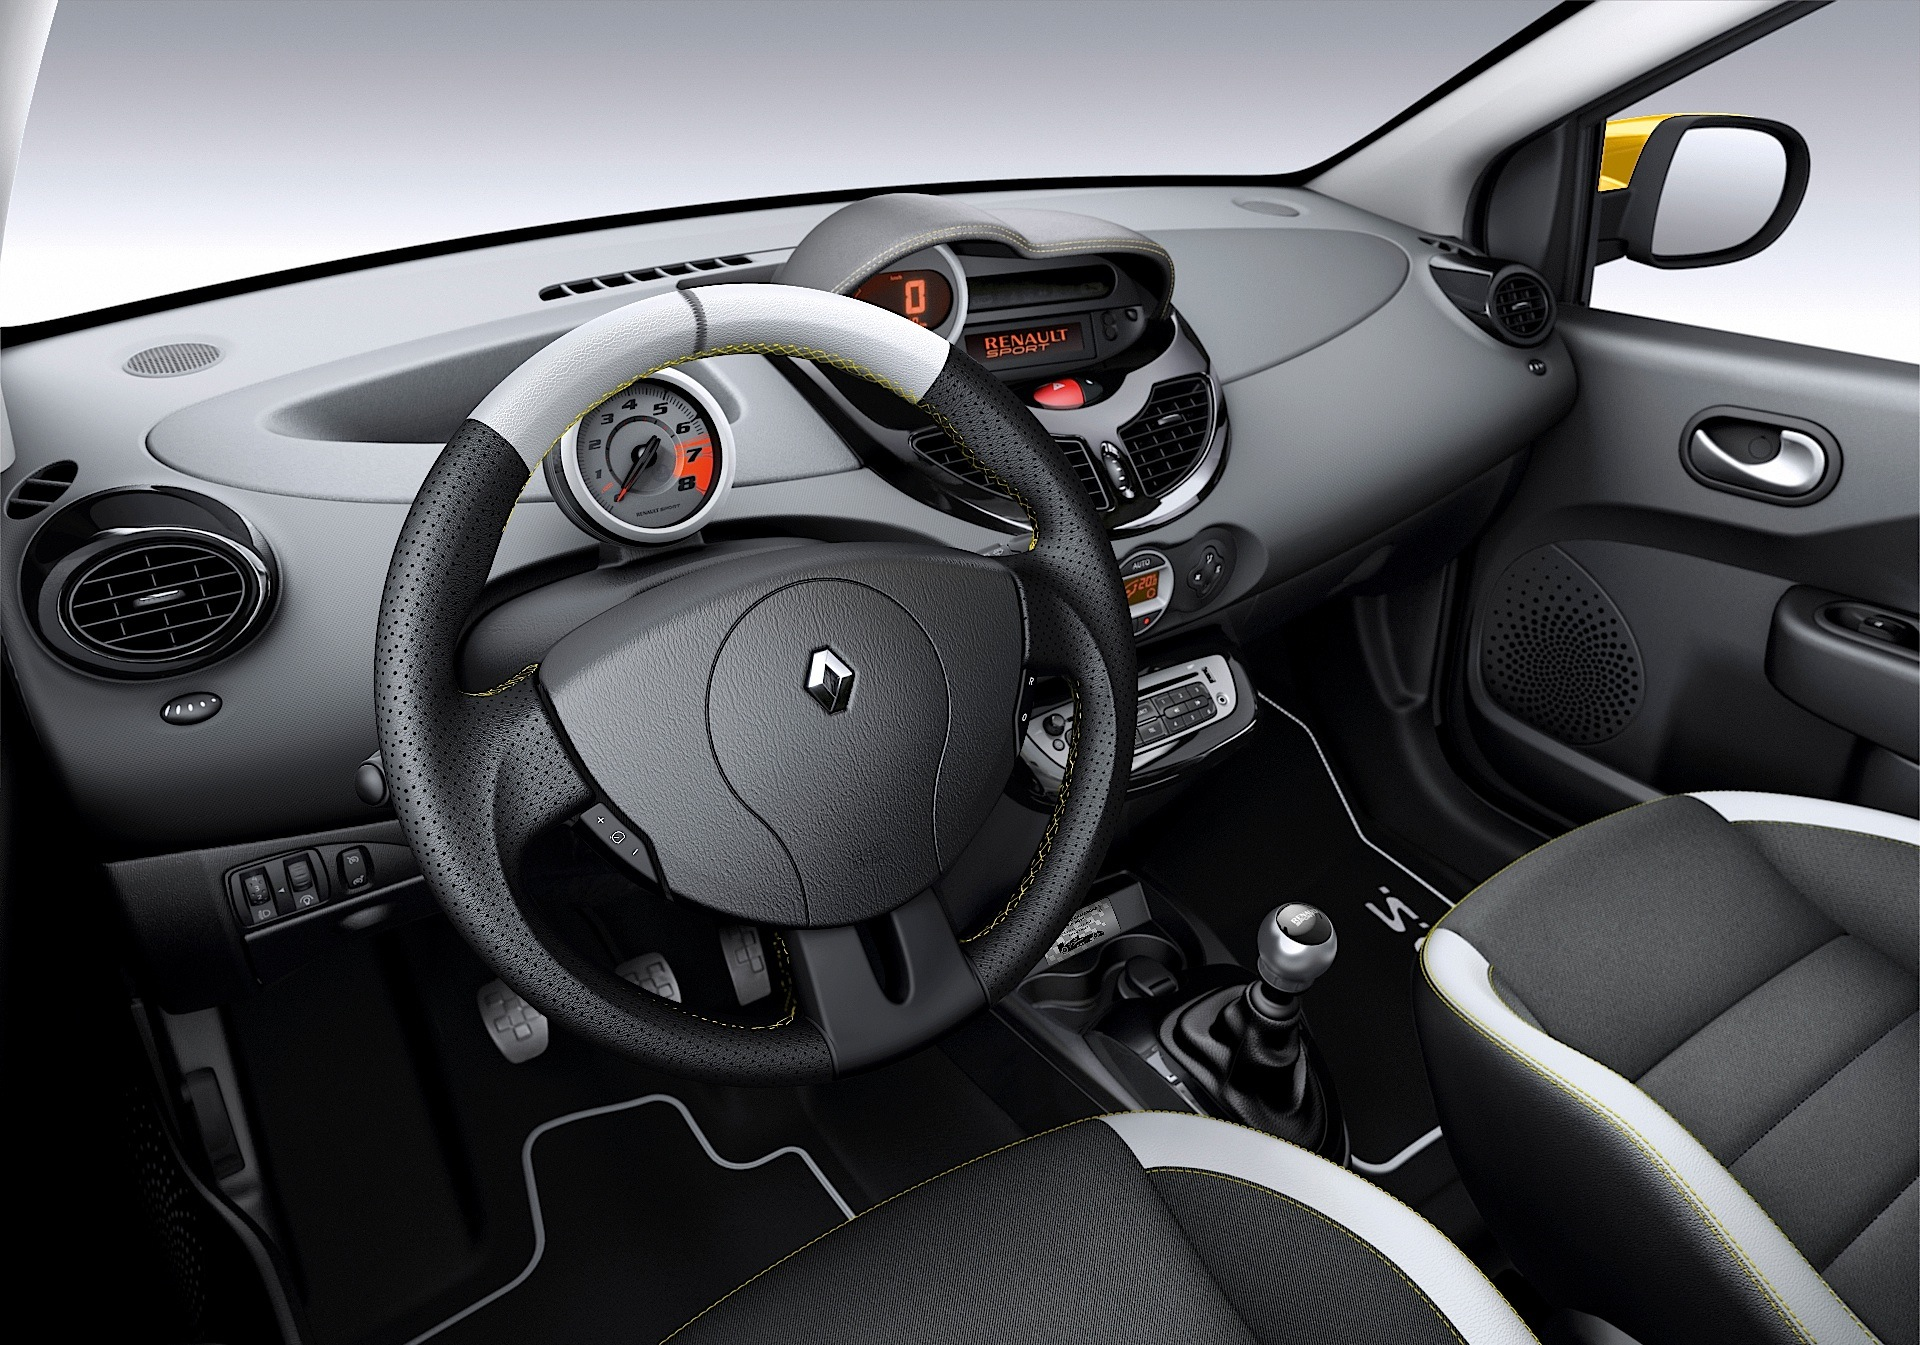 2012 Renault Twingo Photos, Informations, Articles - BestCarMag.com